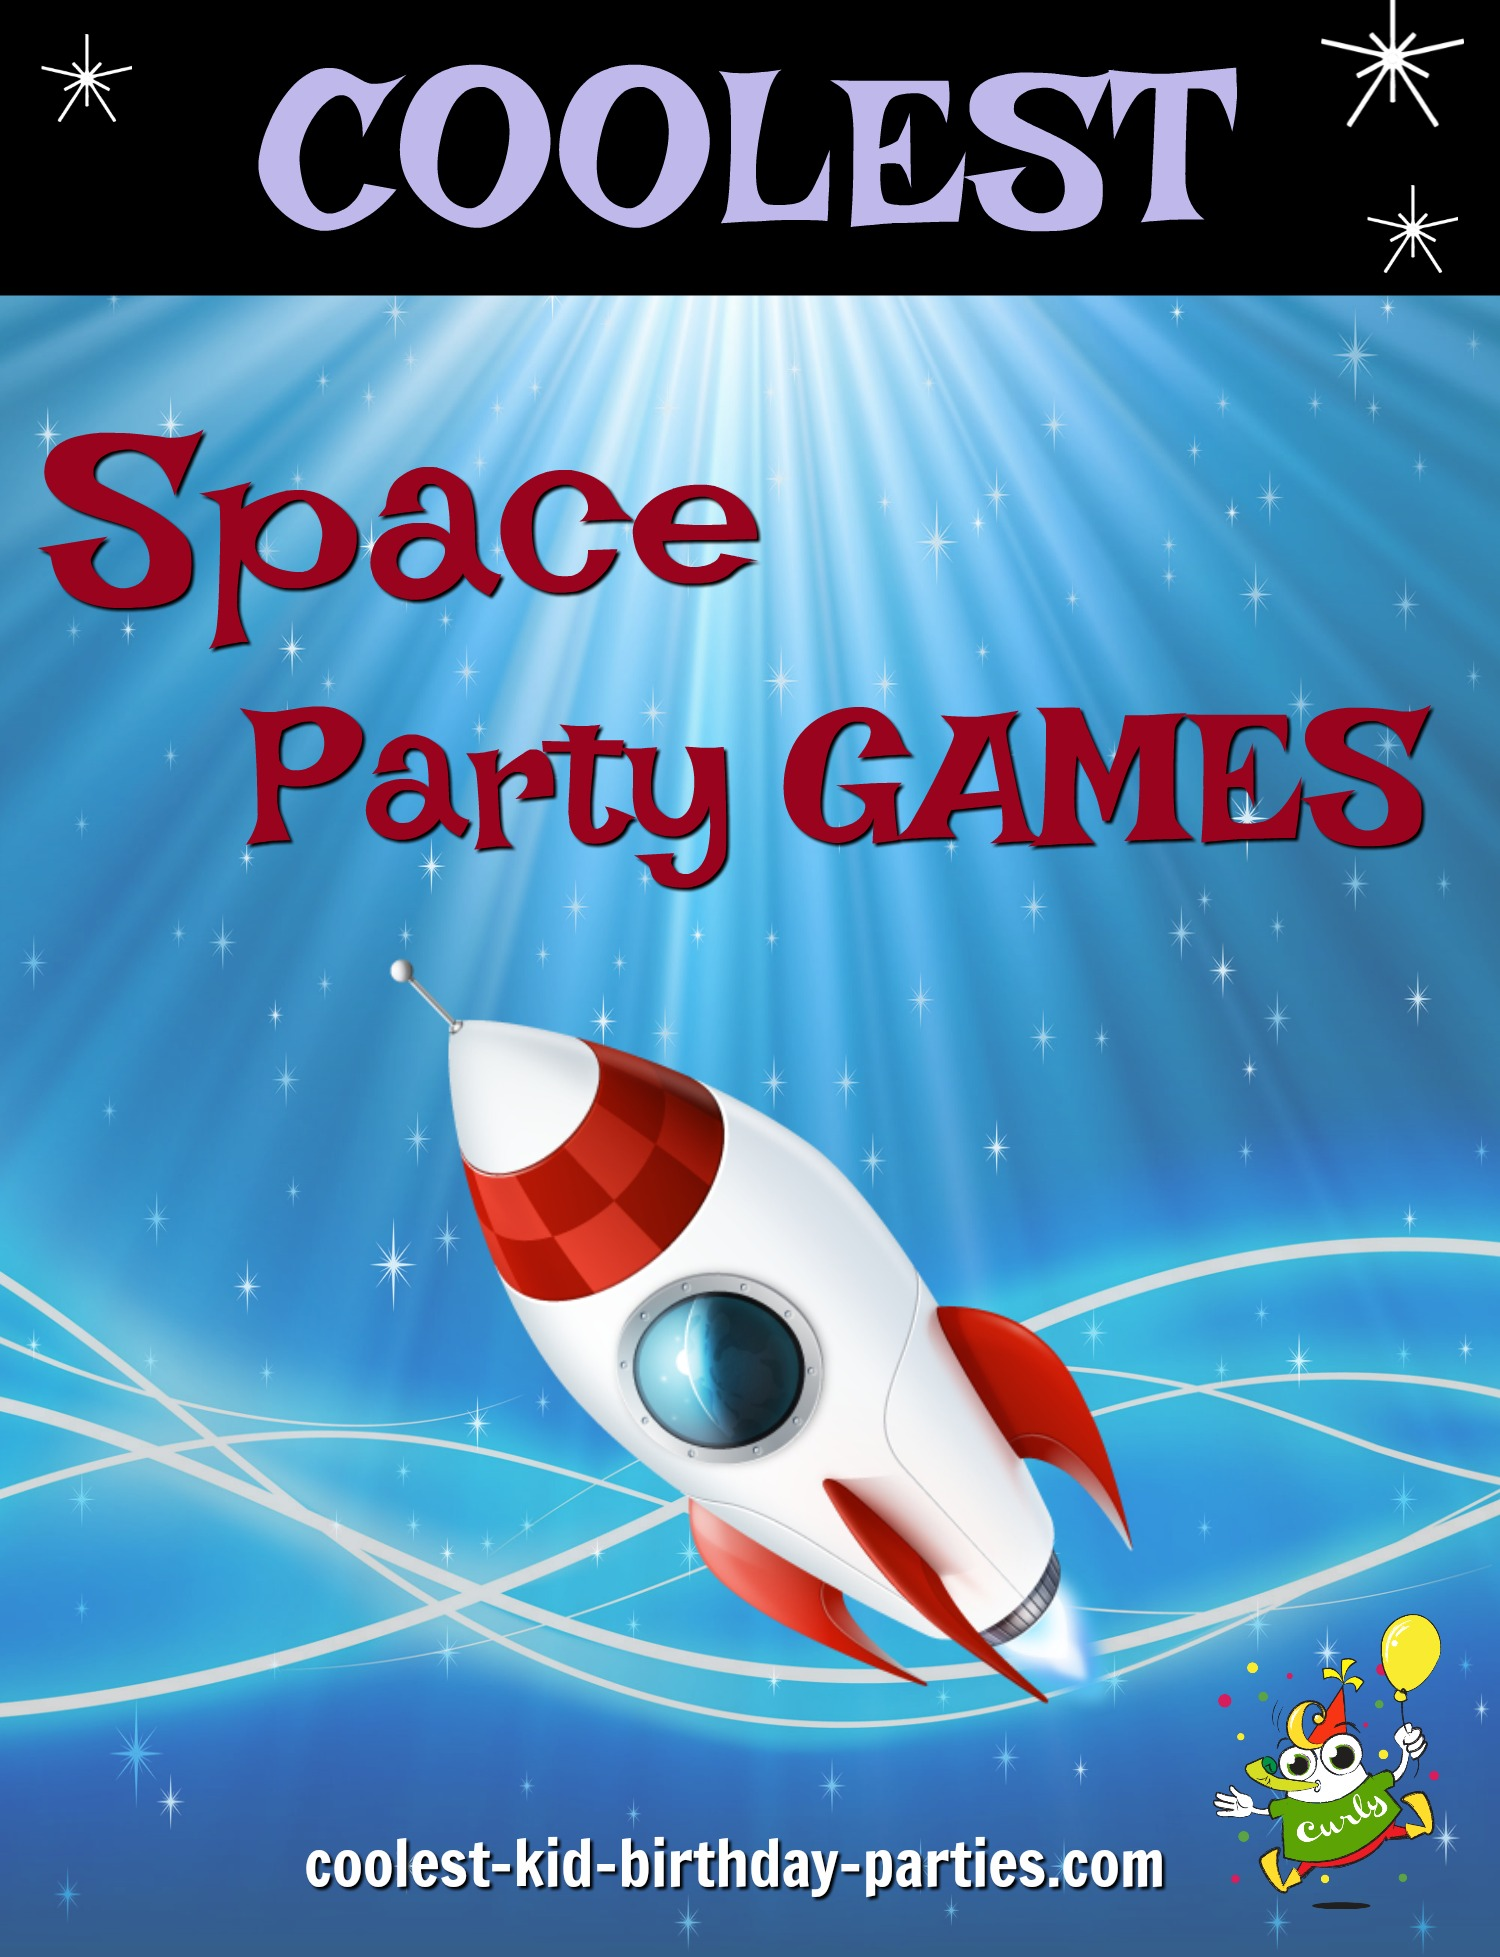 Coolest Space Child Party Games